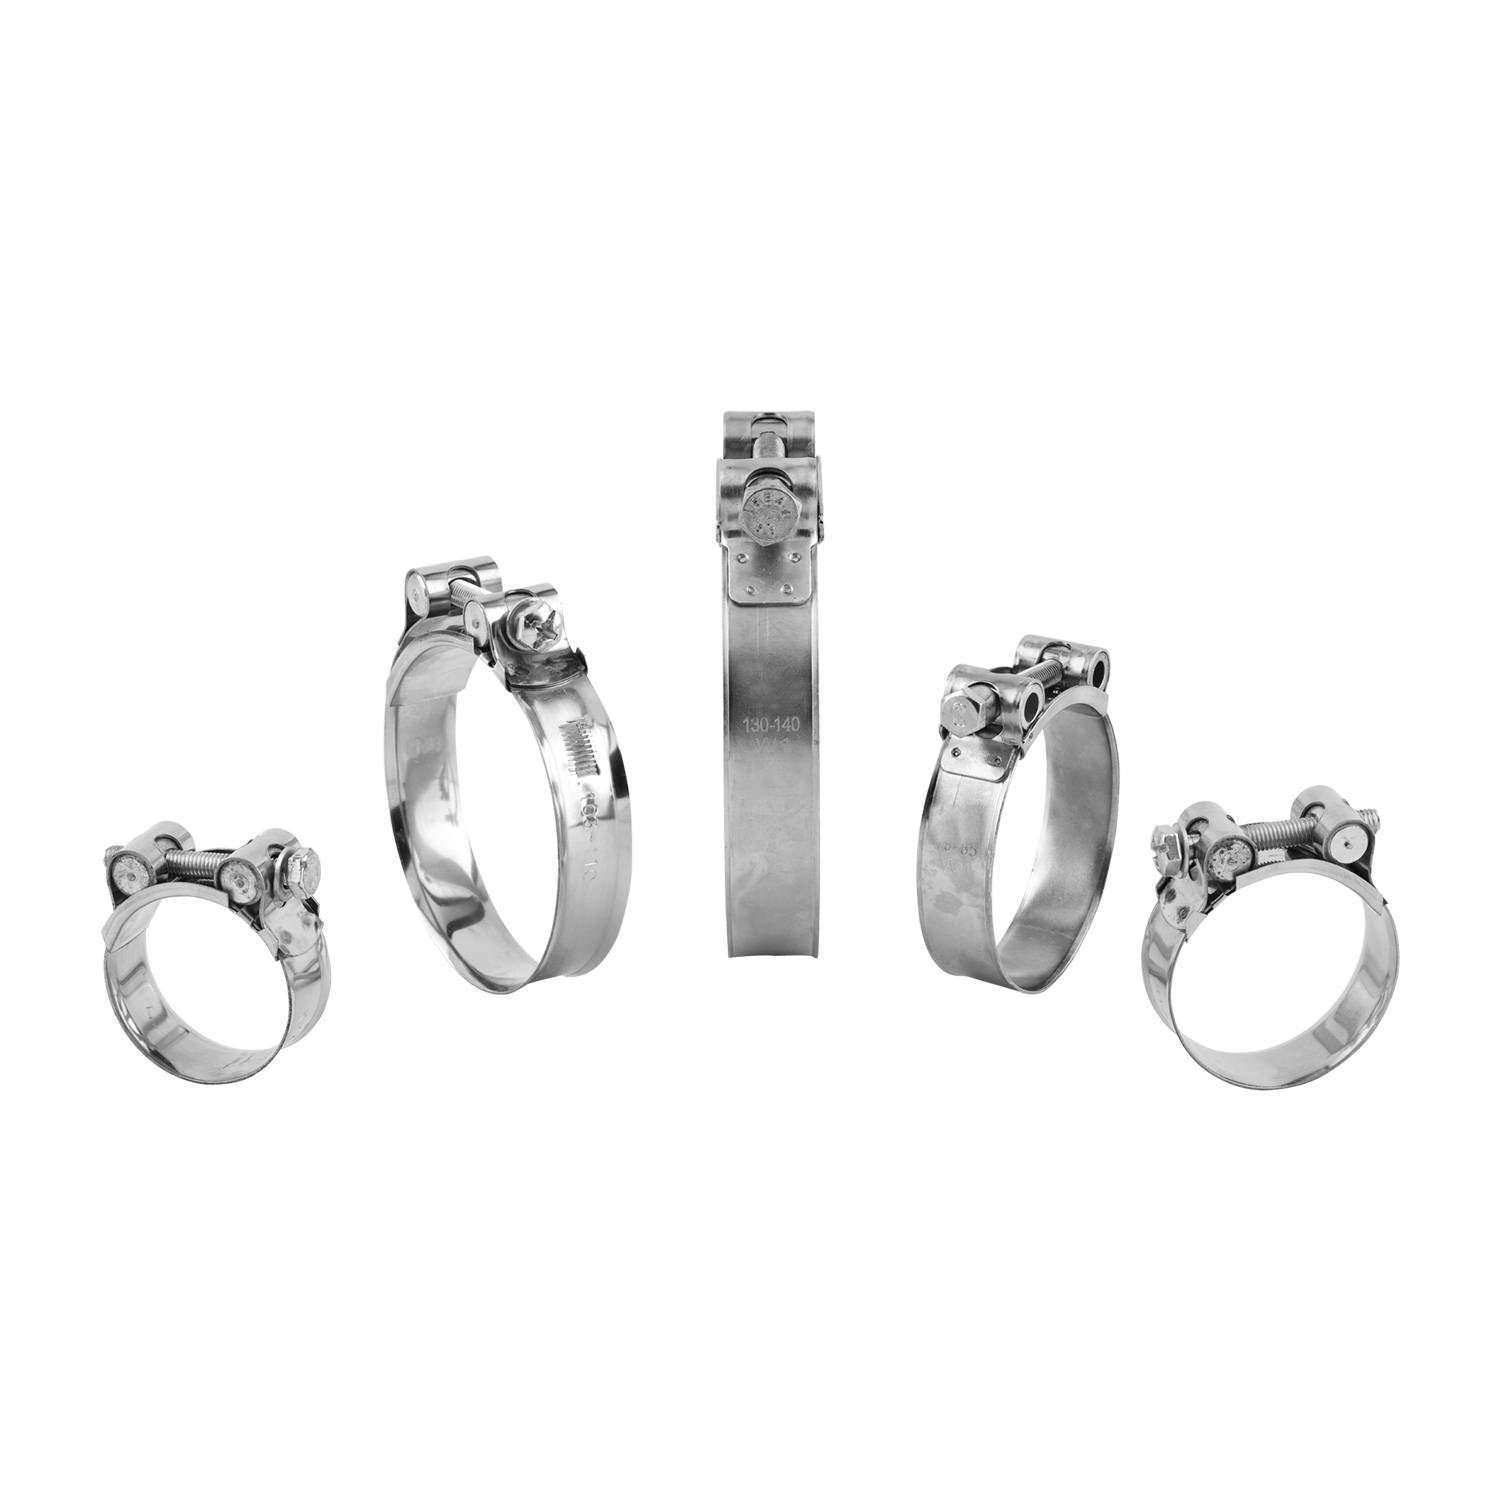 14 MM RIBBED CLAMP